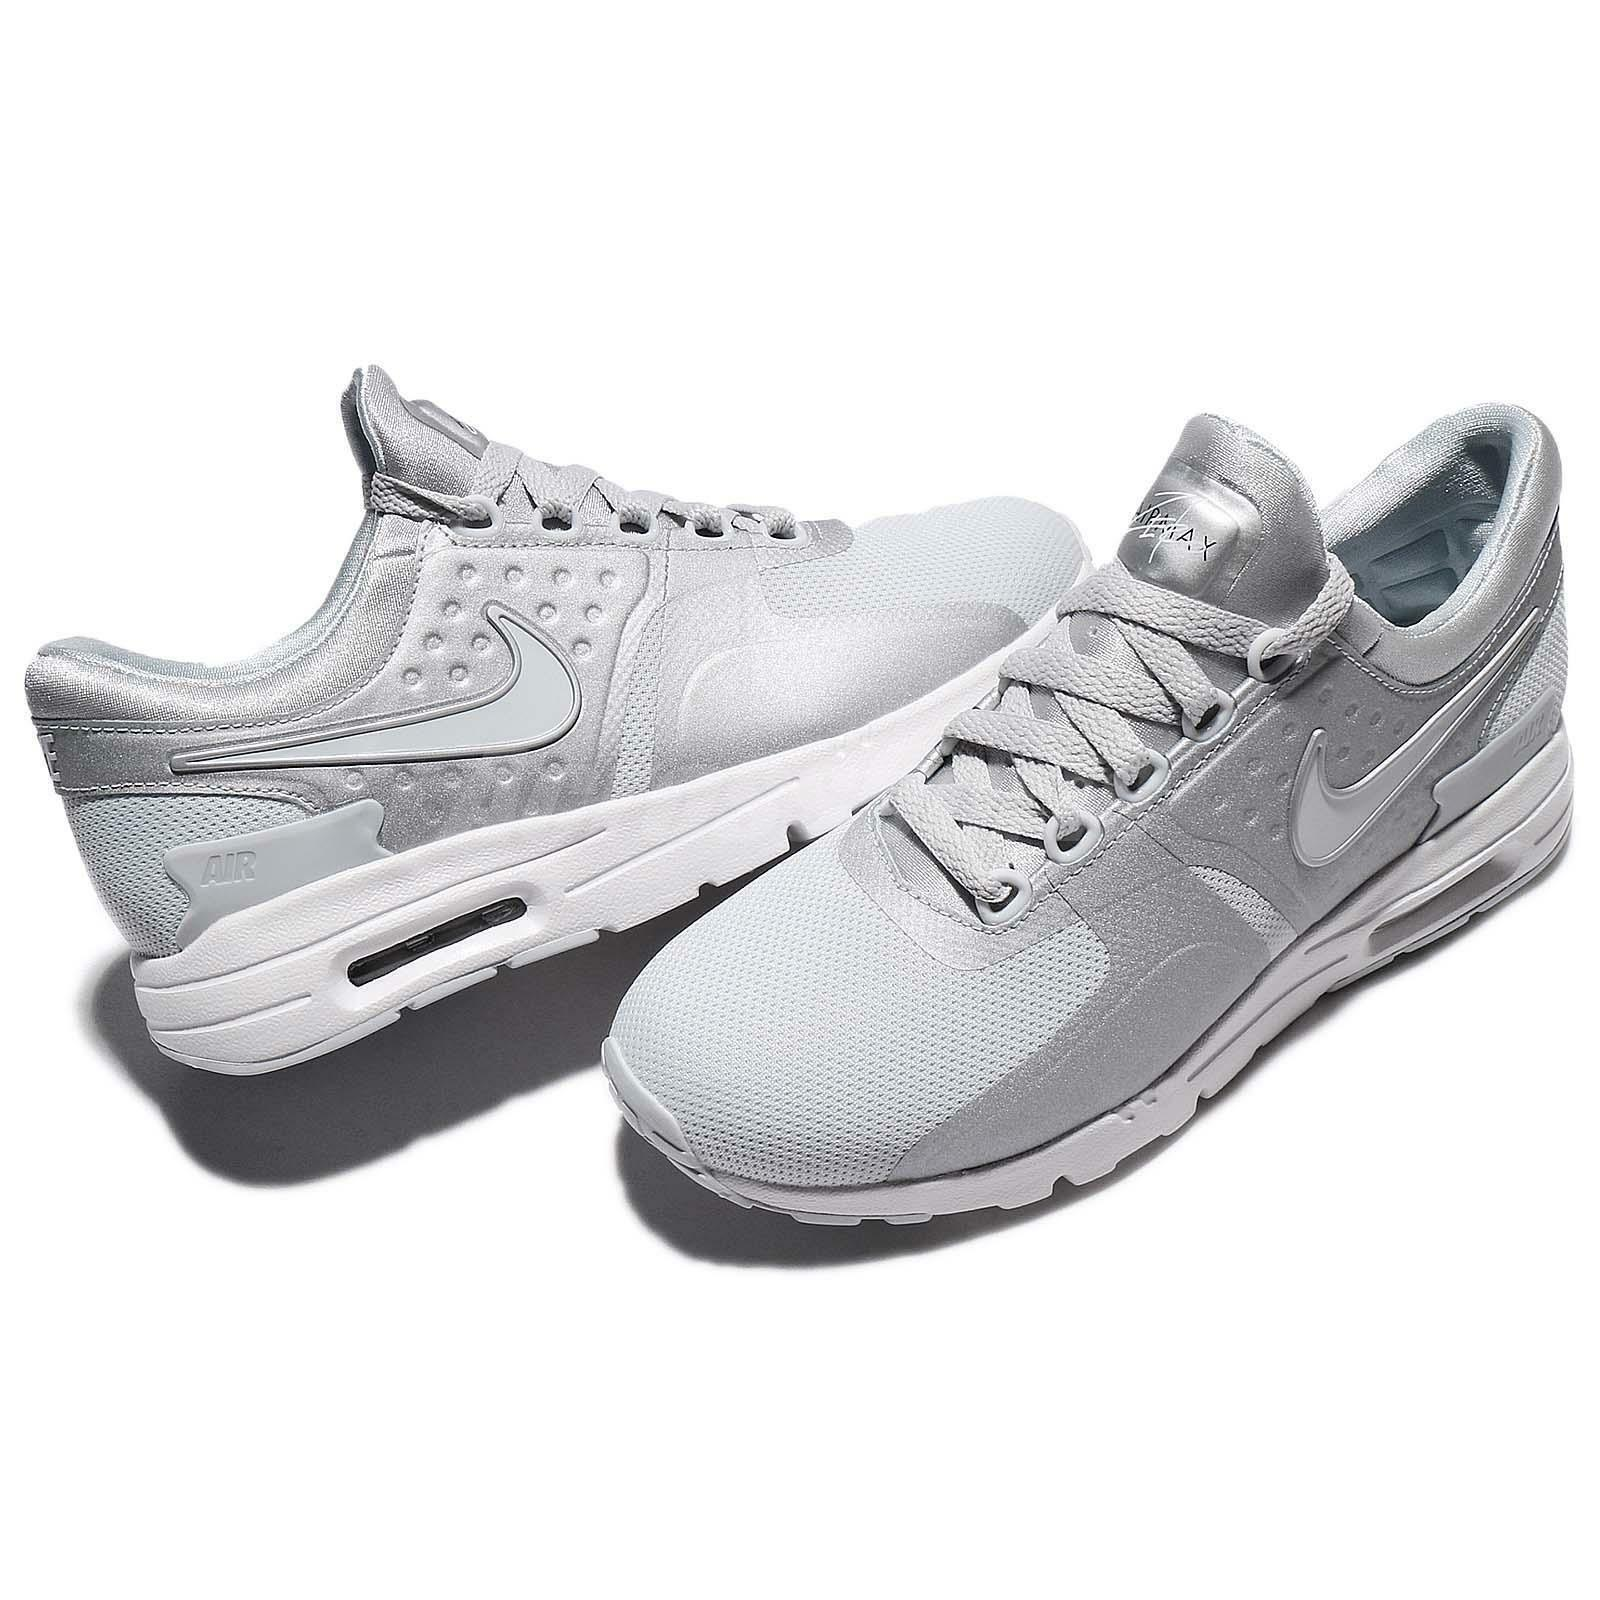 14ca2b635a4b Women s NIKE Air Max Zero RUNNING RUNNING RUNNING Shoes ALL SIZES Pure  Platinum (857661 013